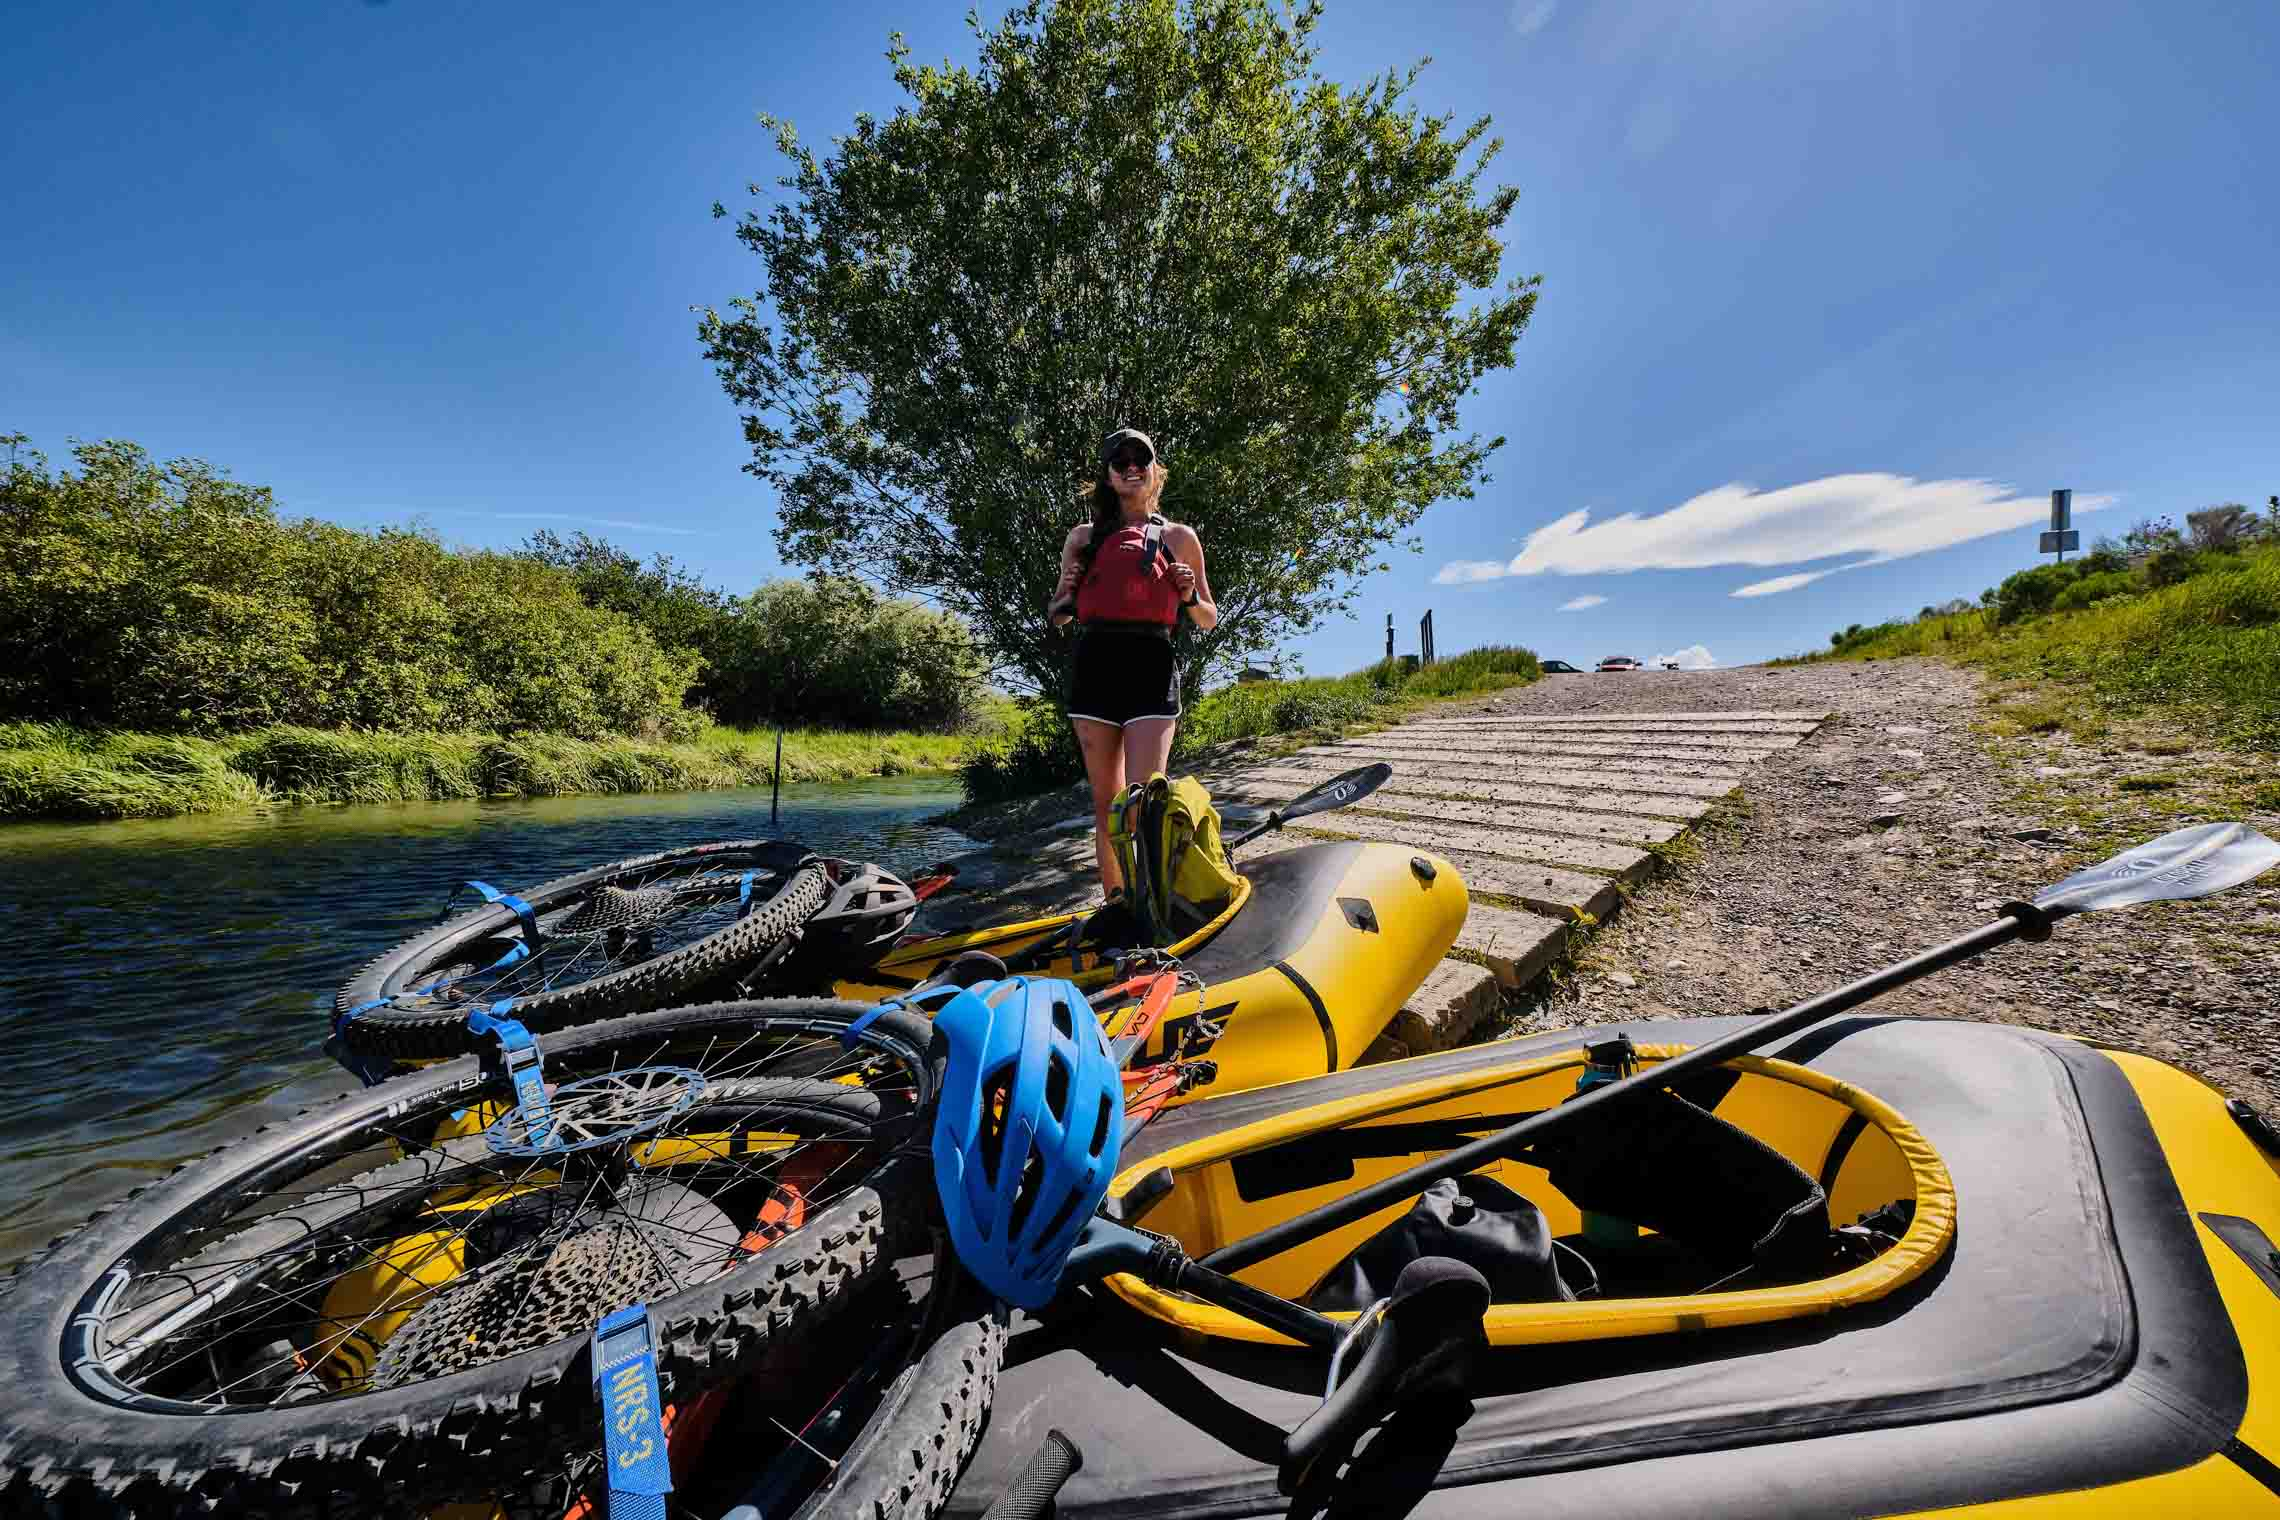 Bikes packed on packrafts next to water with a woman standing near them smiling